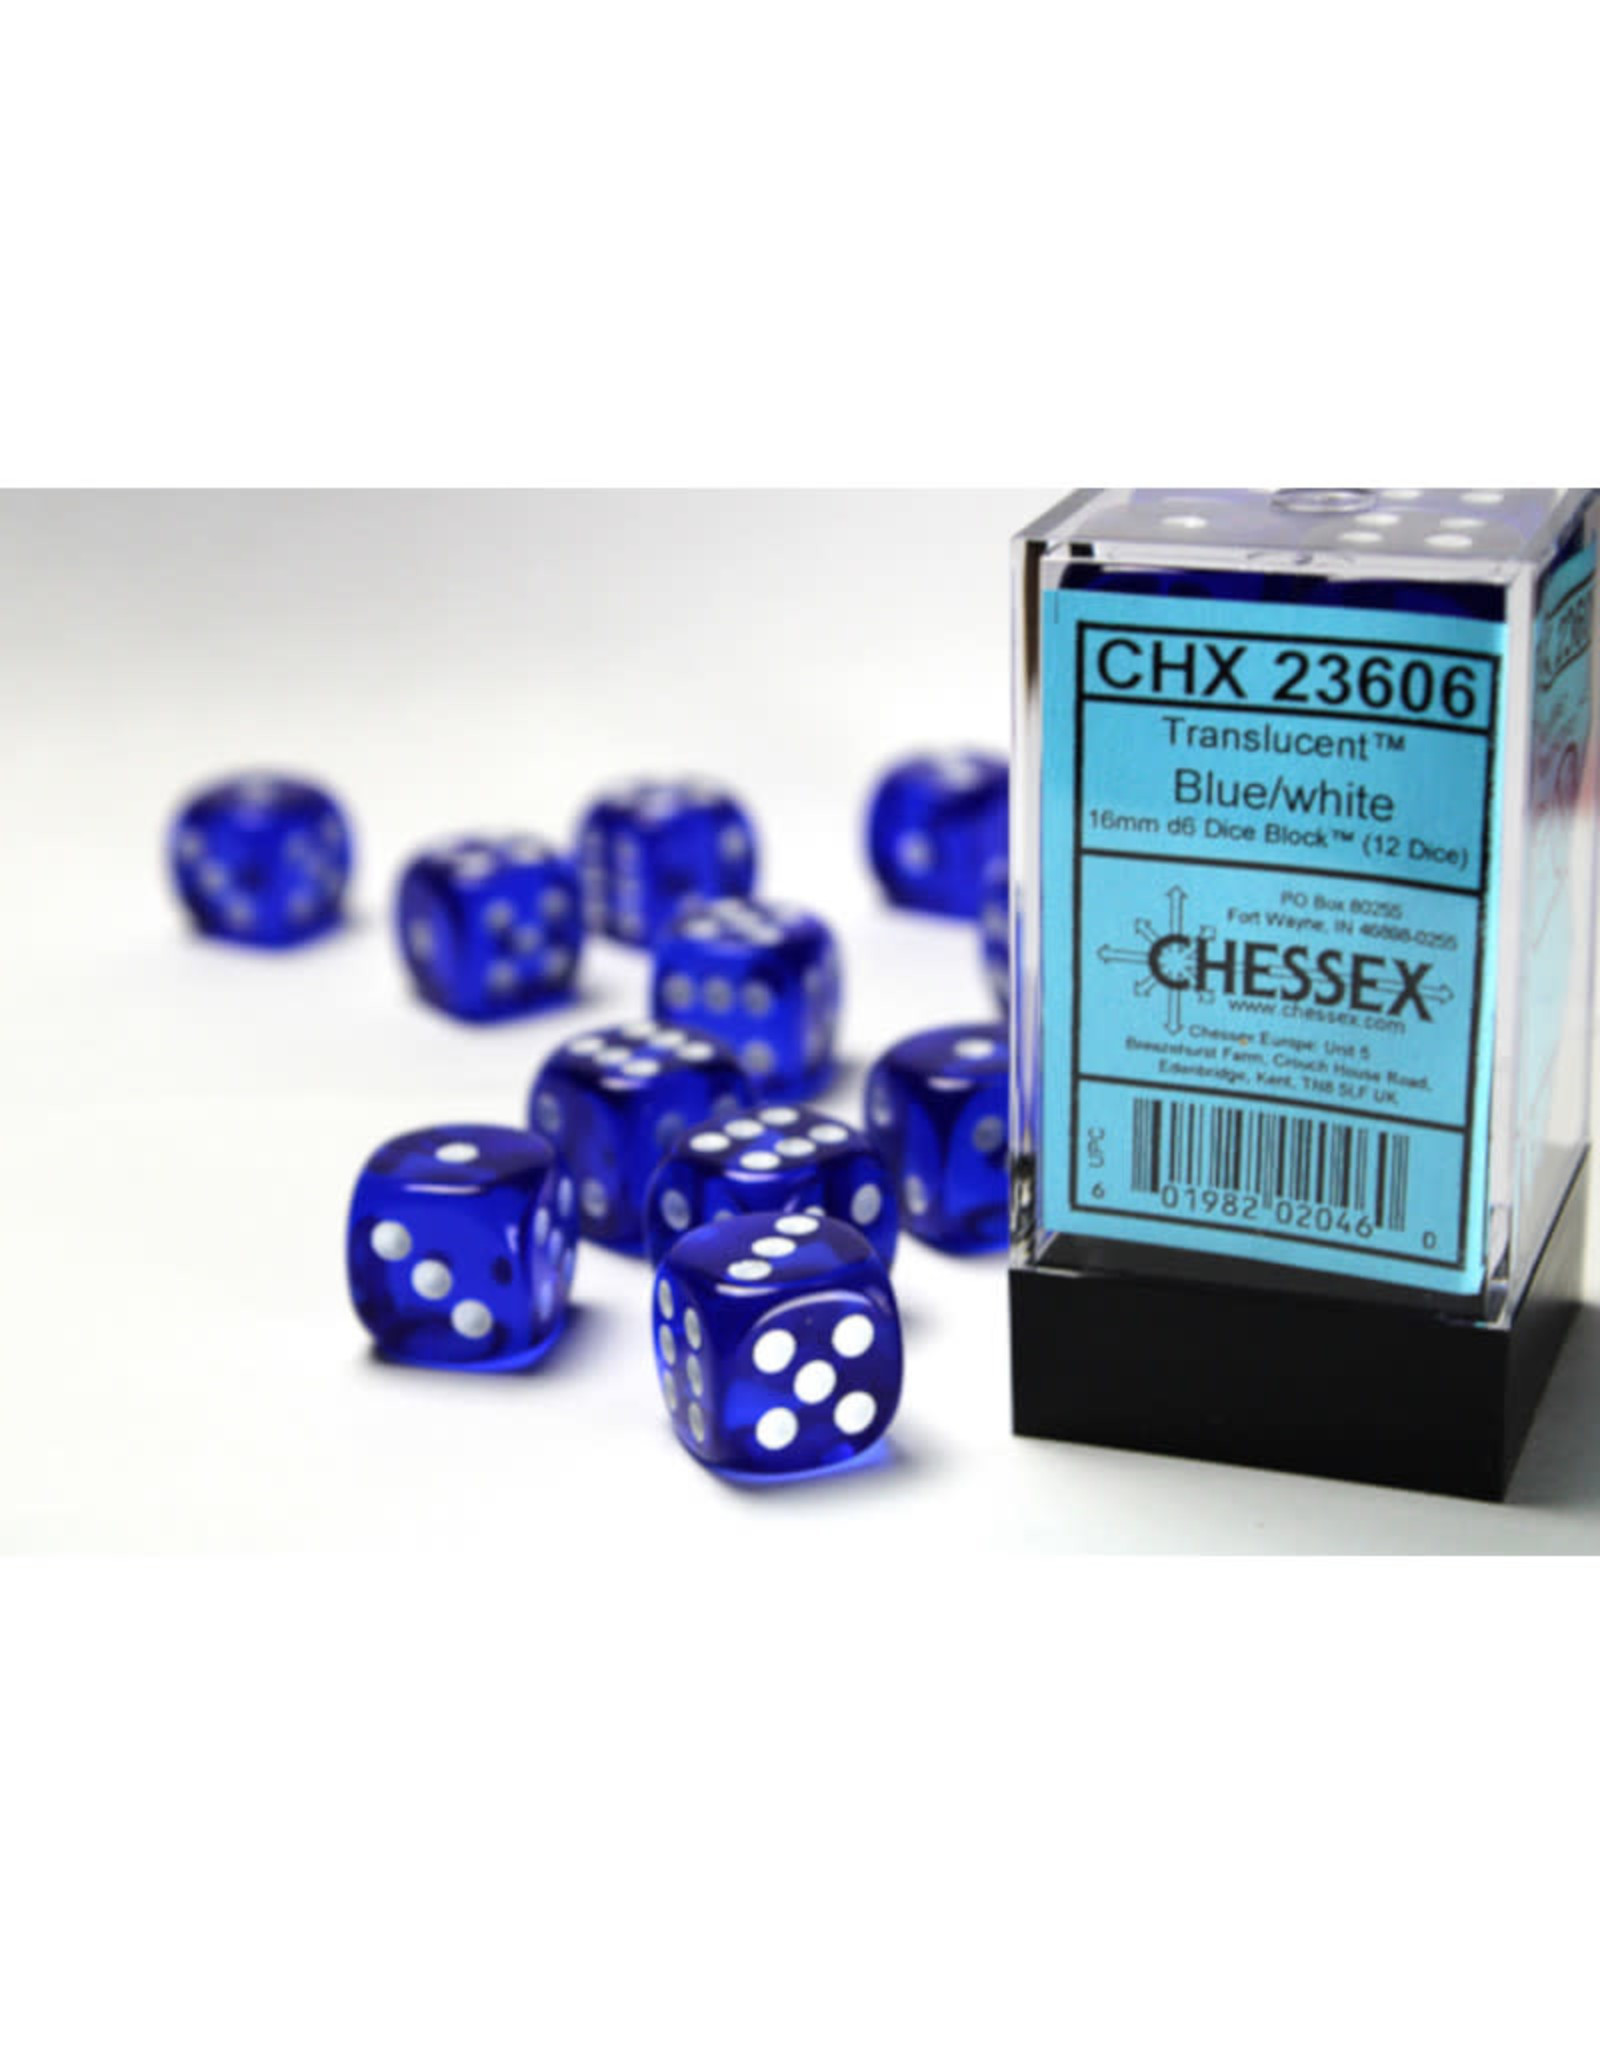 Chessex D6 Dice: 16mm Translucent Blue (12)